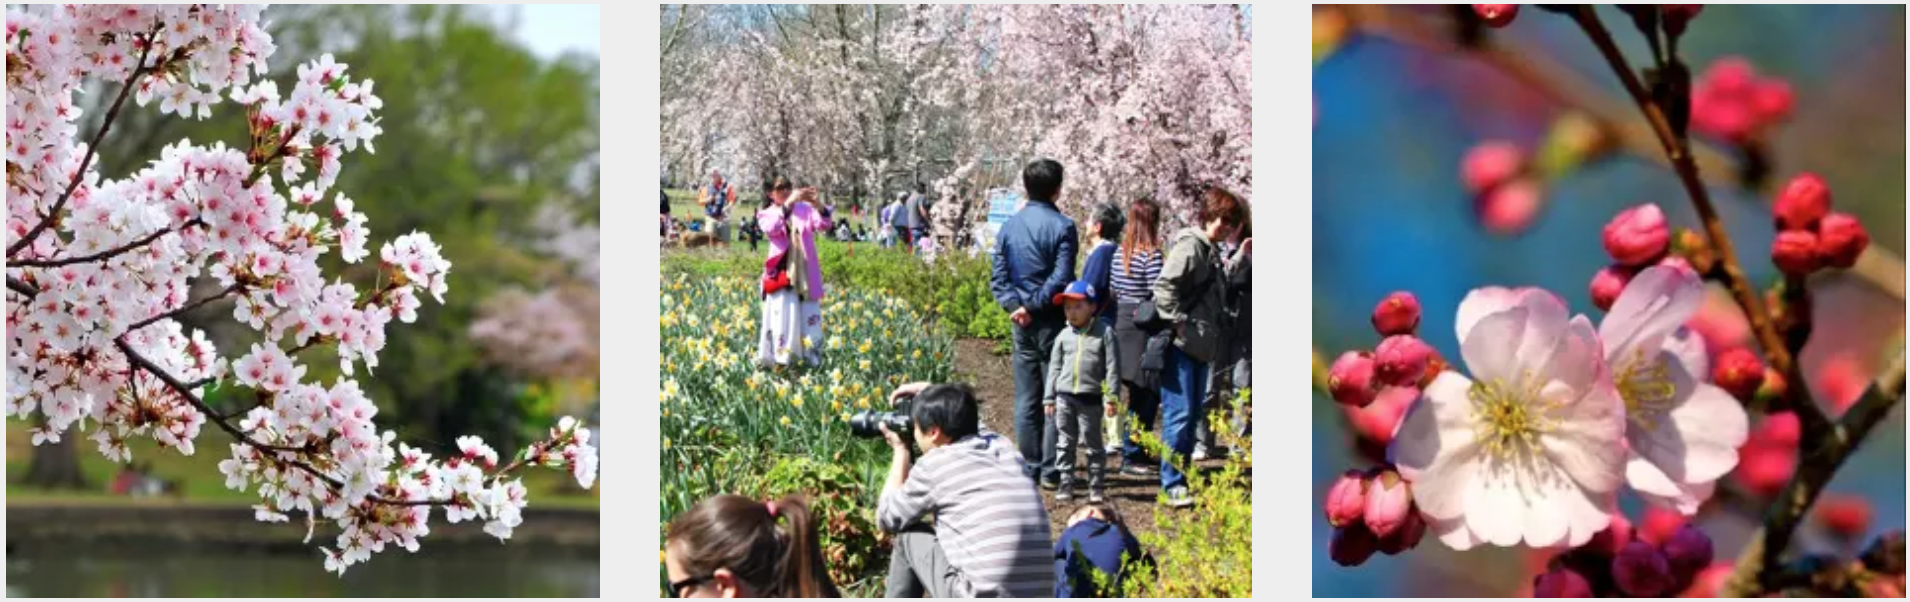 New Jersey's Essex County Cherry Blossom Festival and Bloomfest